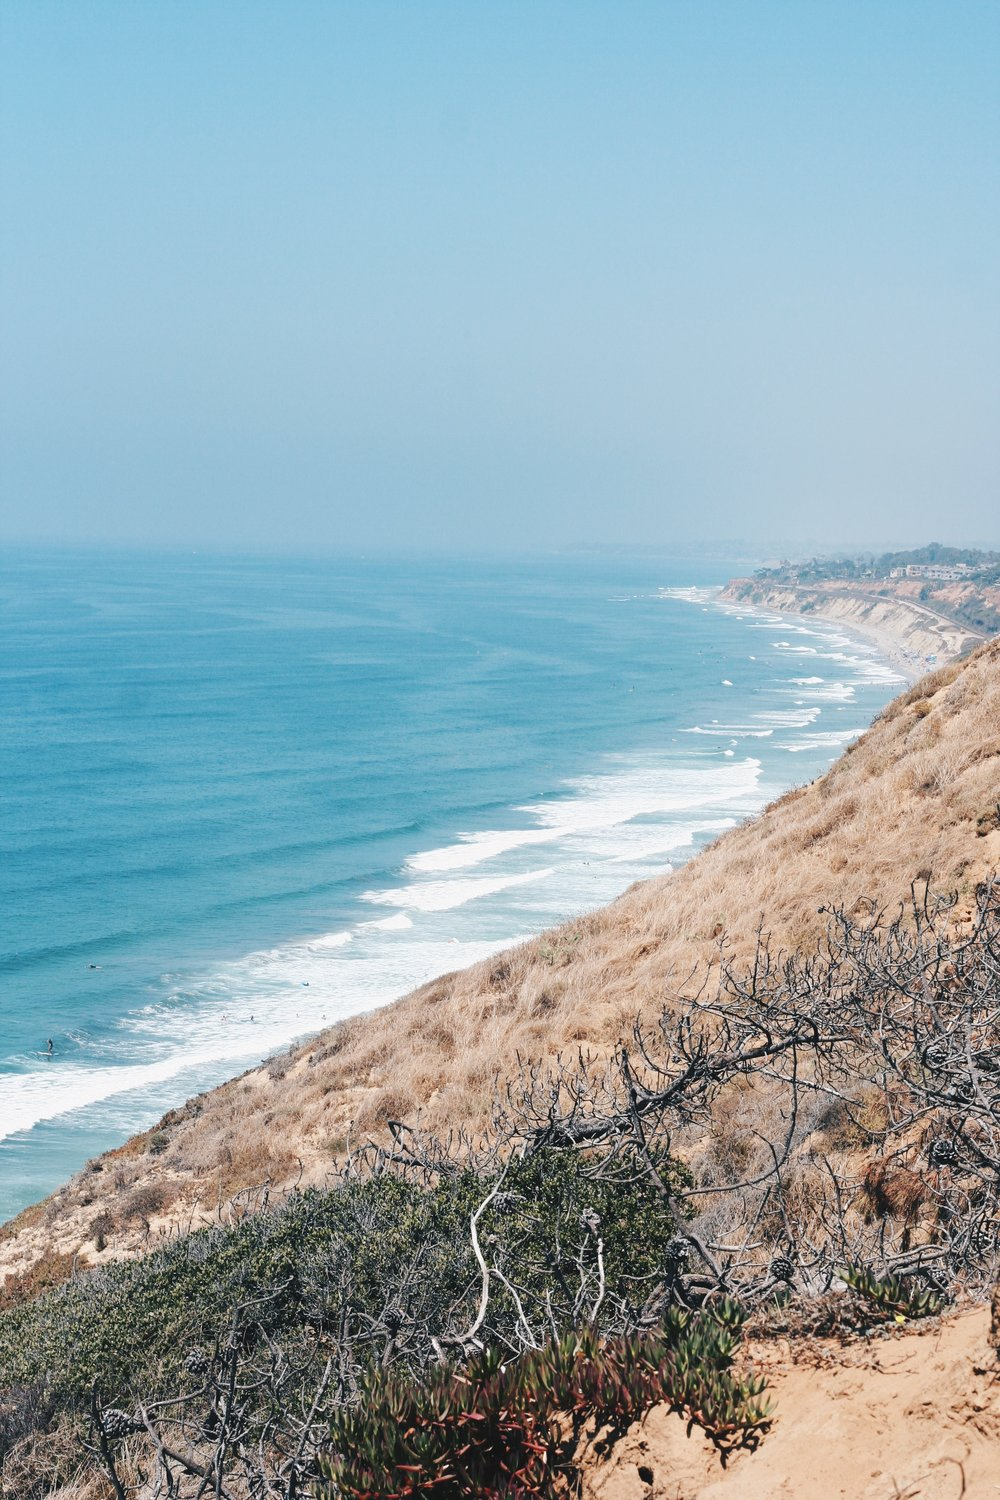 Hiking trails at Torrey Pines State Natural Reserve